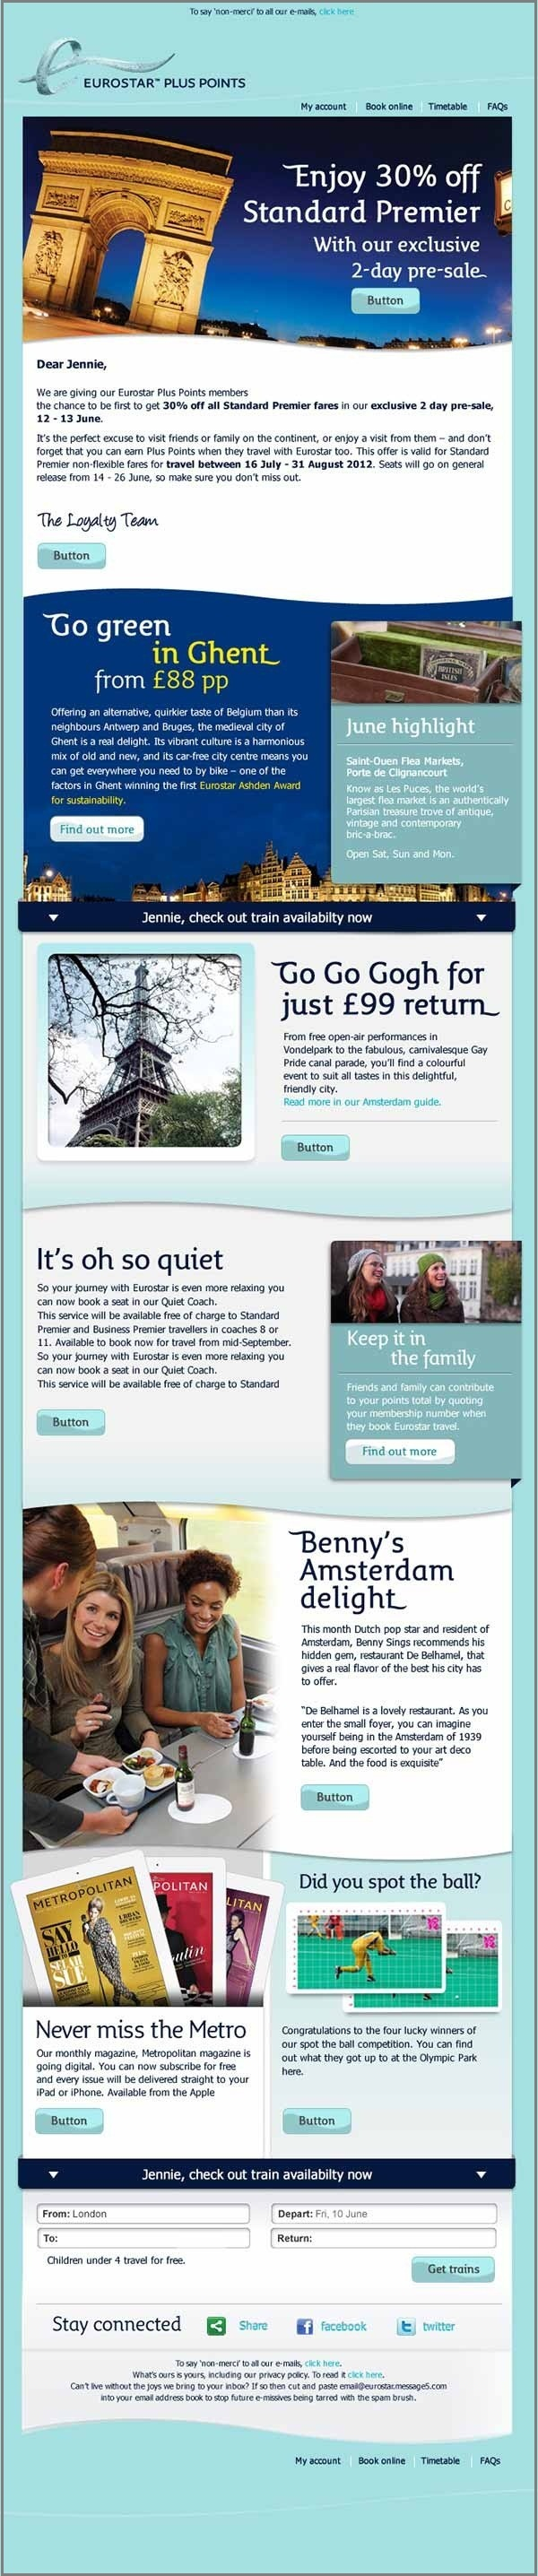 email template examples- Eurostar